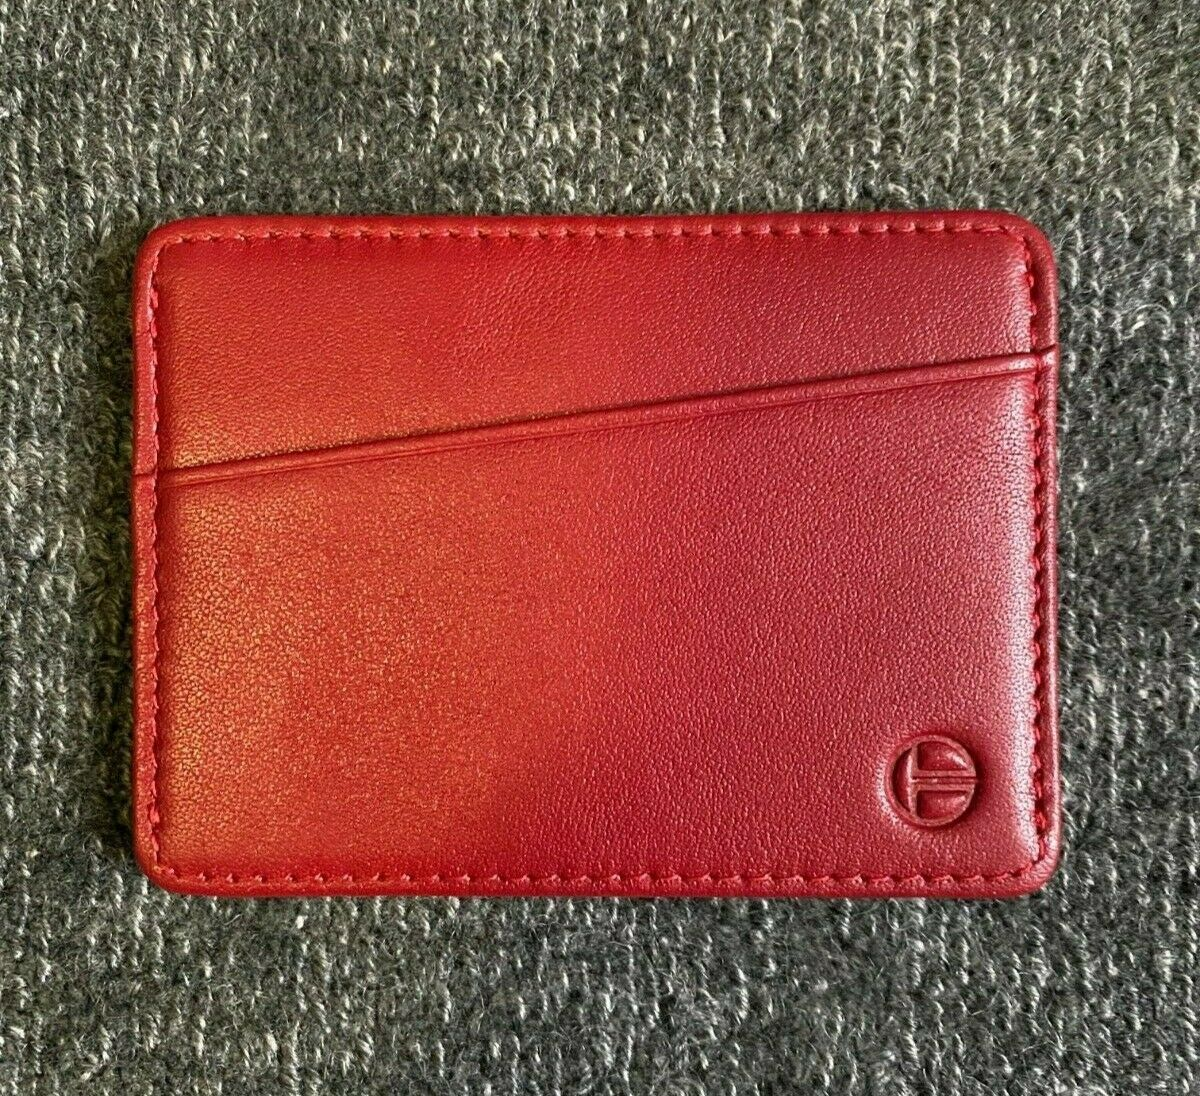 Slim Minimalist Wallet - Teng & Co TYNI Wallet Red Nappa Leather NEW with Box